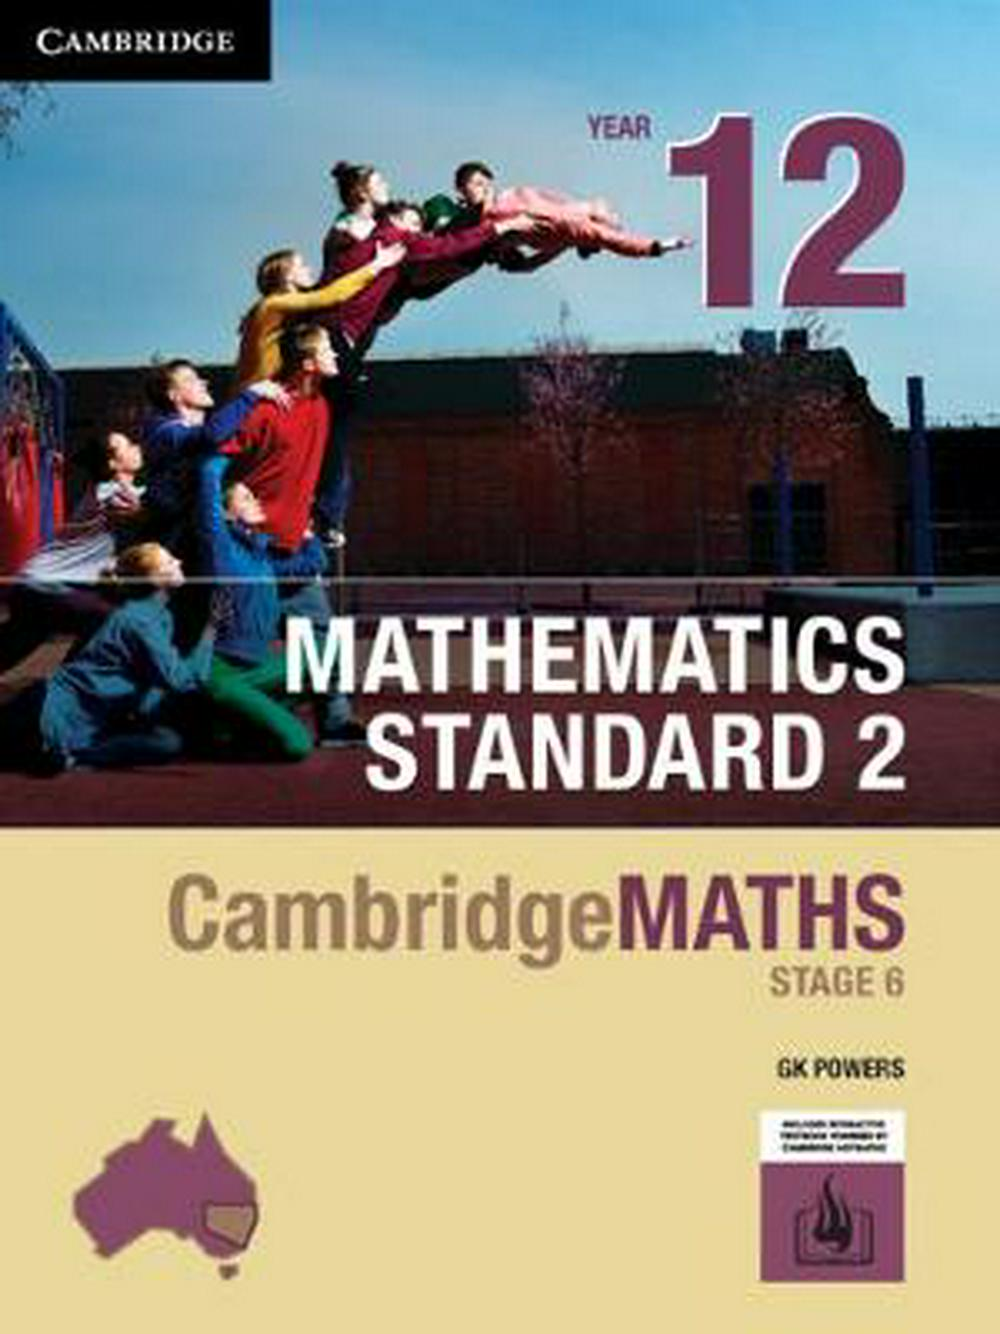 Cambridge Maths Stage 6 NSW Standard TWO Year 12 Print Bundle (Textbook and HOTmaths)